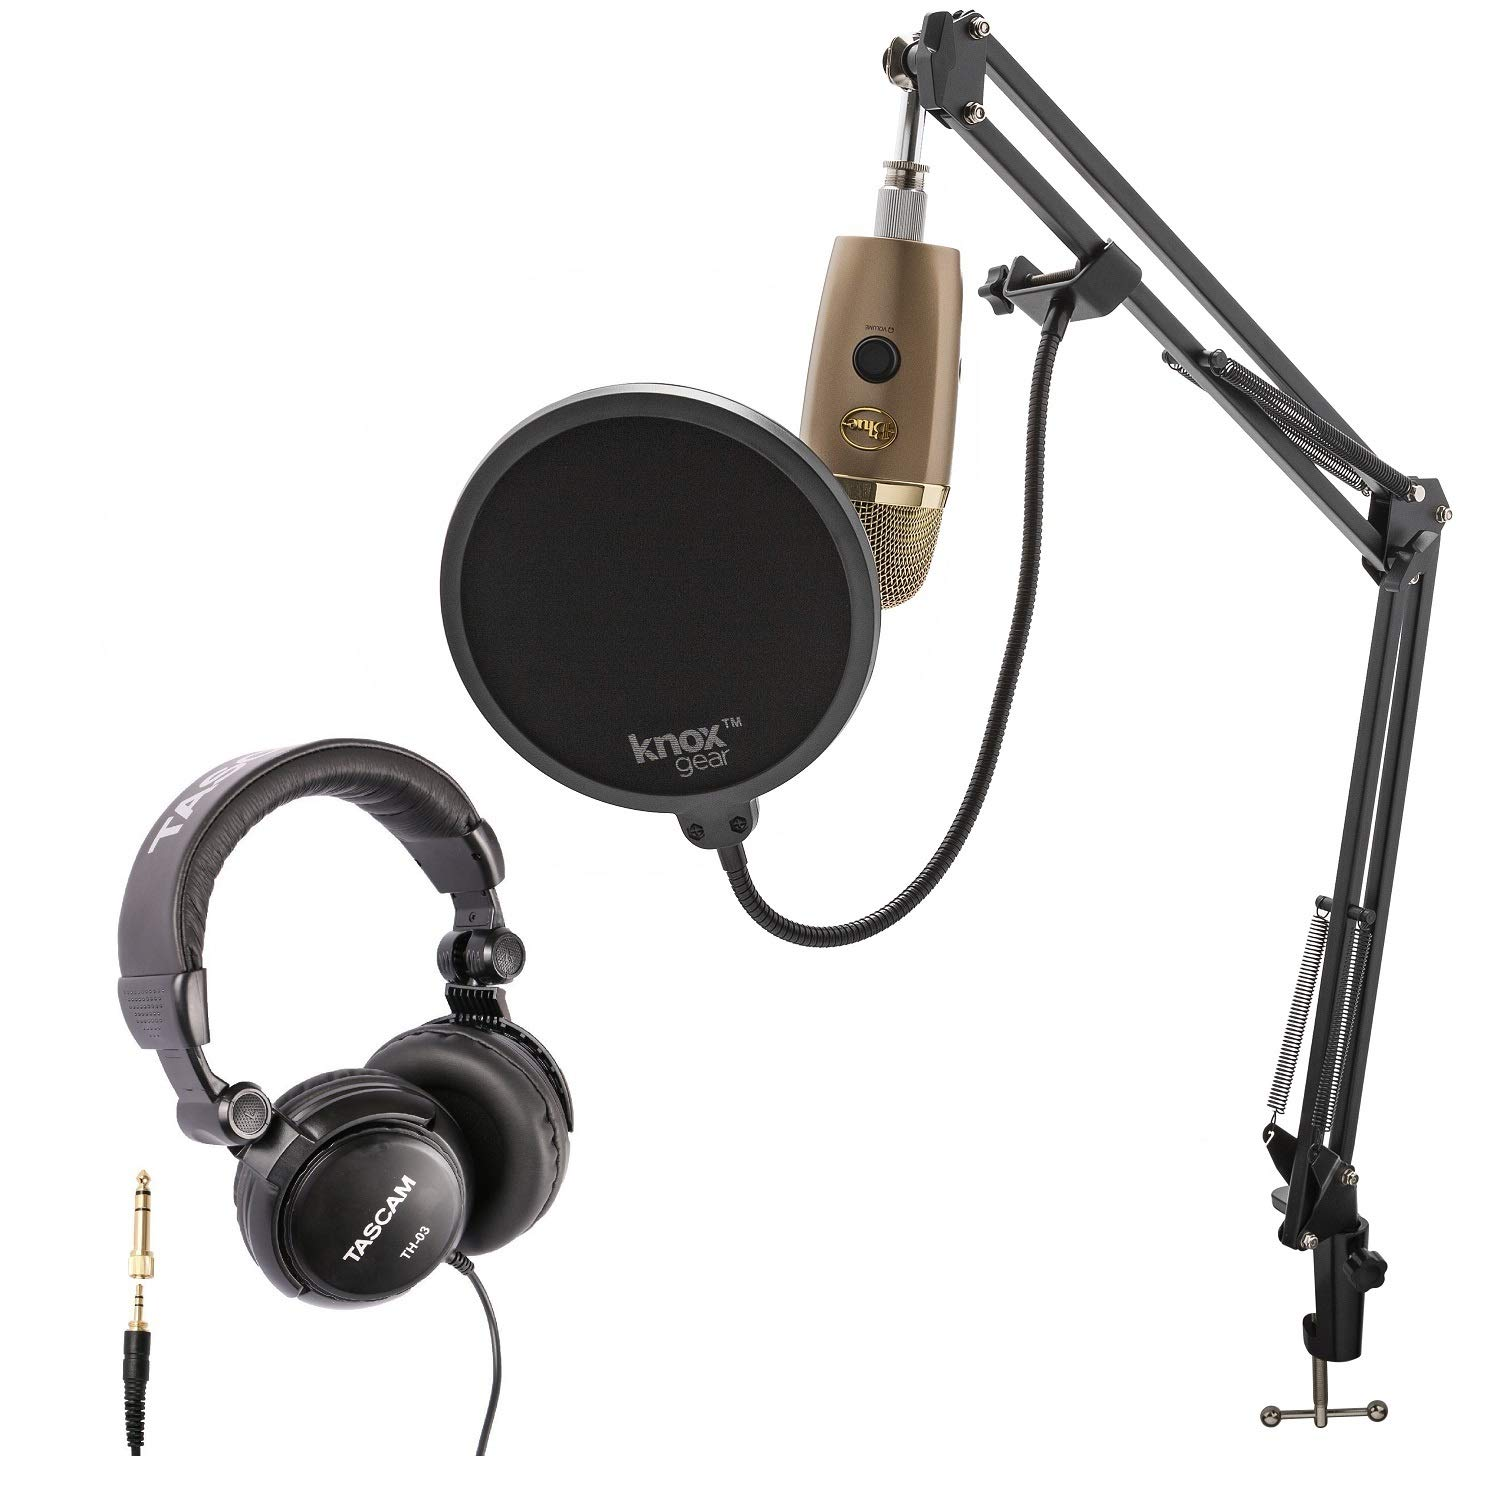 Blue Yeti Nano Premium USB Microphone (Cubano Gold) with Tascam TH-03 Closed Back Over-Ear Headphones, Knox Gear Boom Scissor Arm and Pop Filter by Blue Microphones